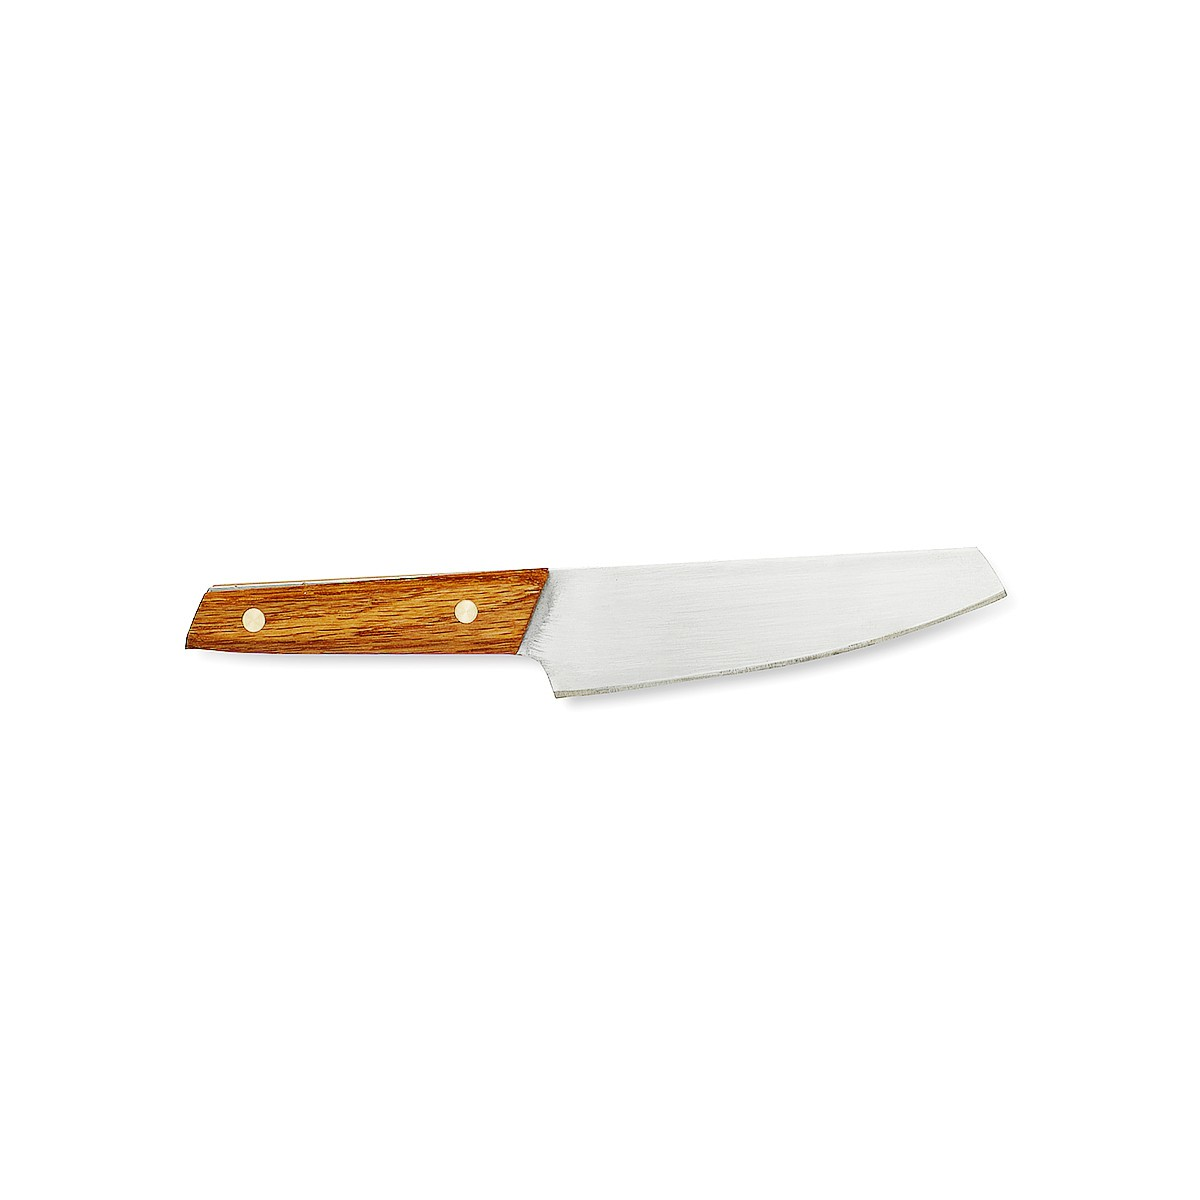 CampFire Knife Small